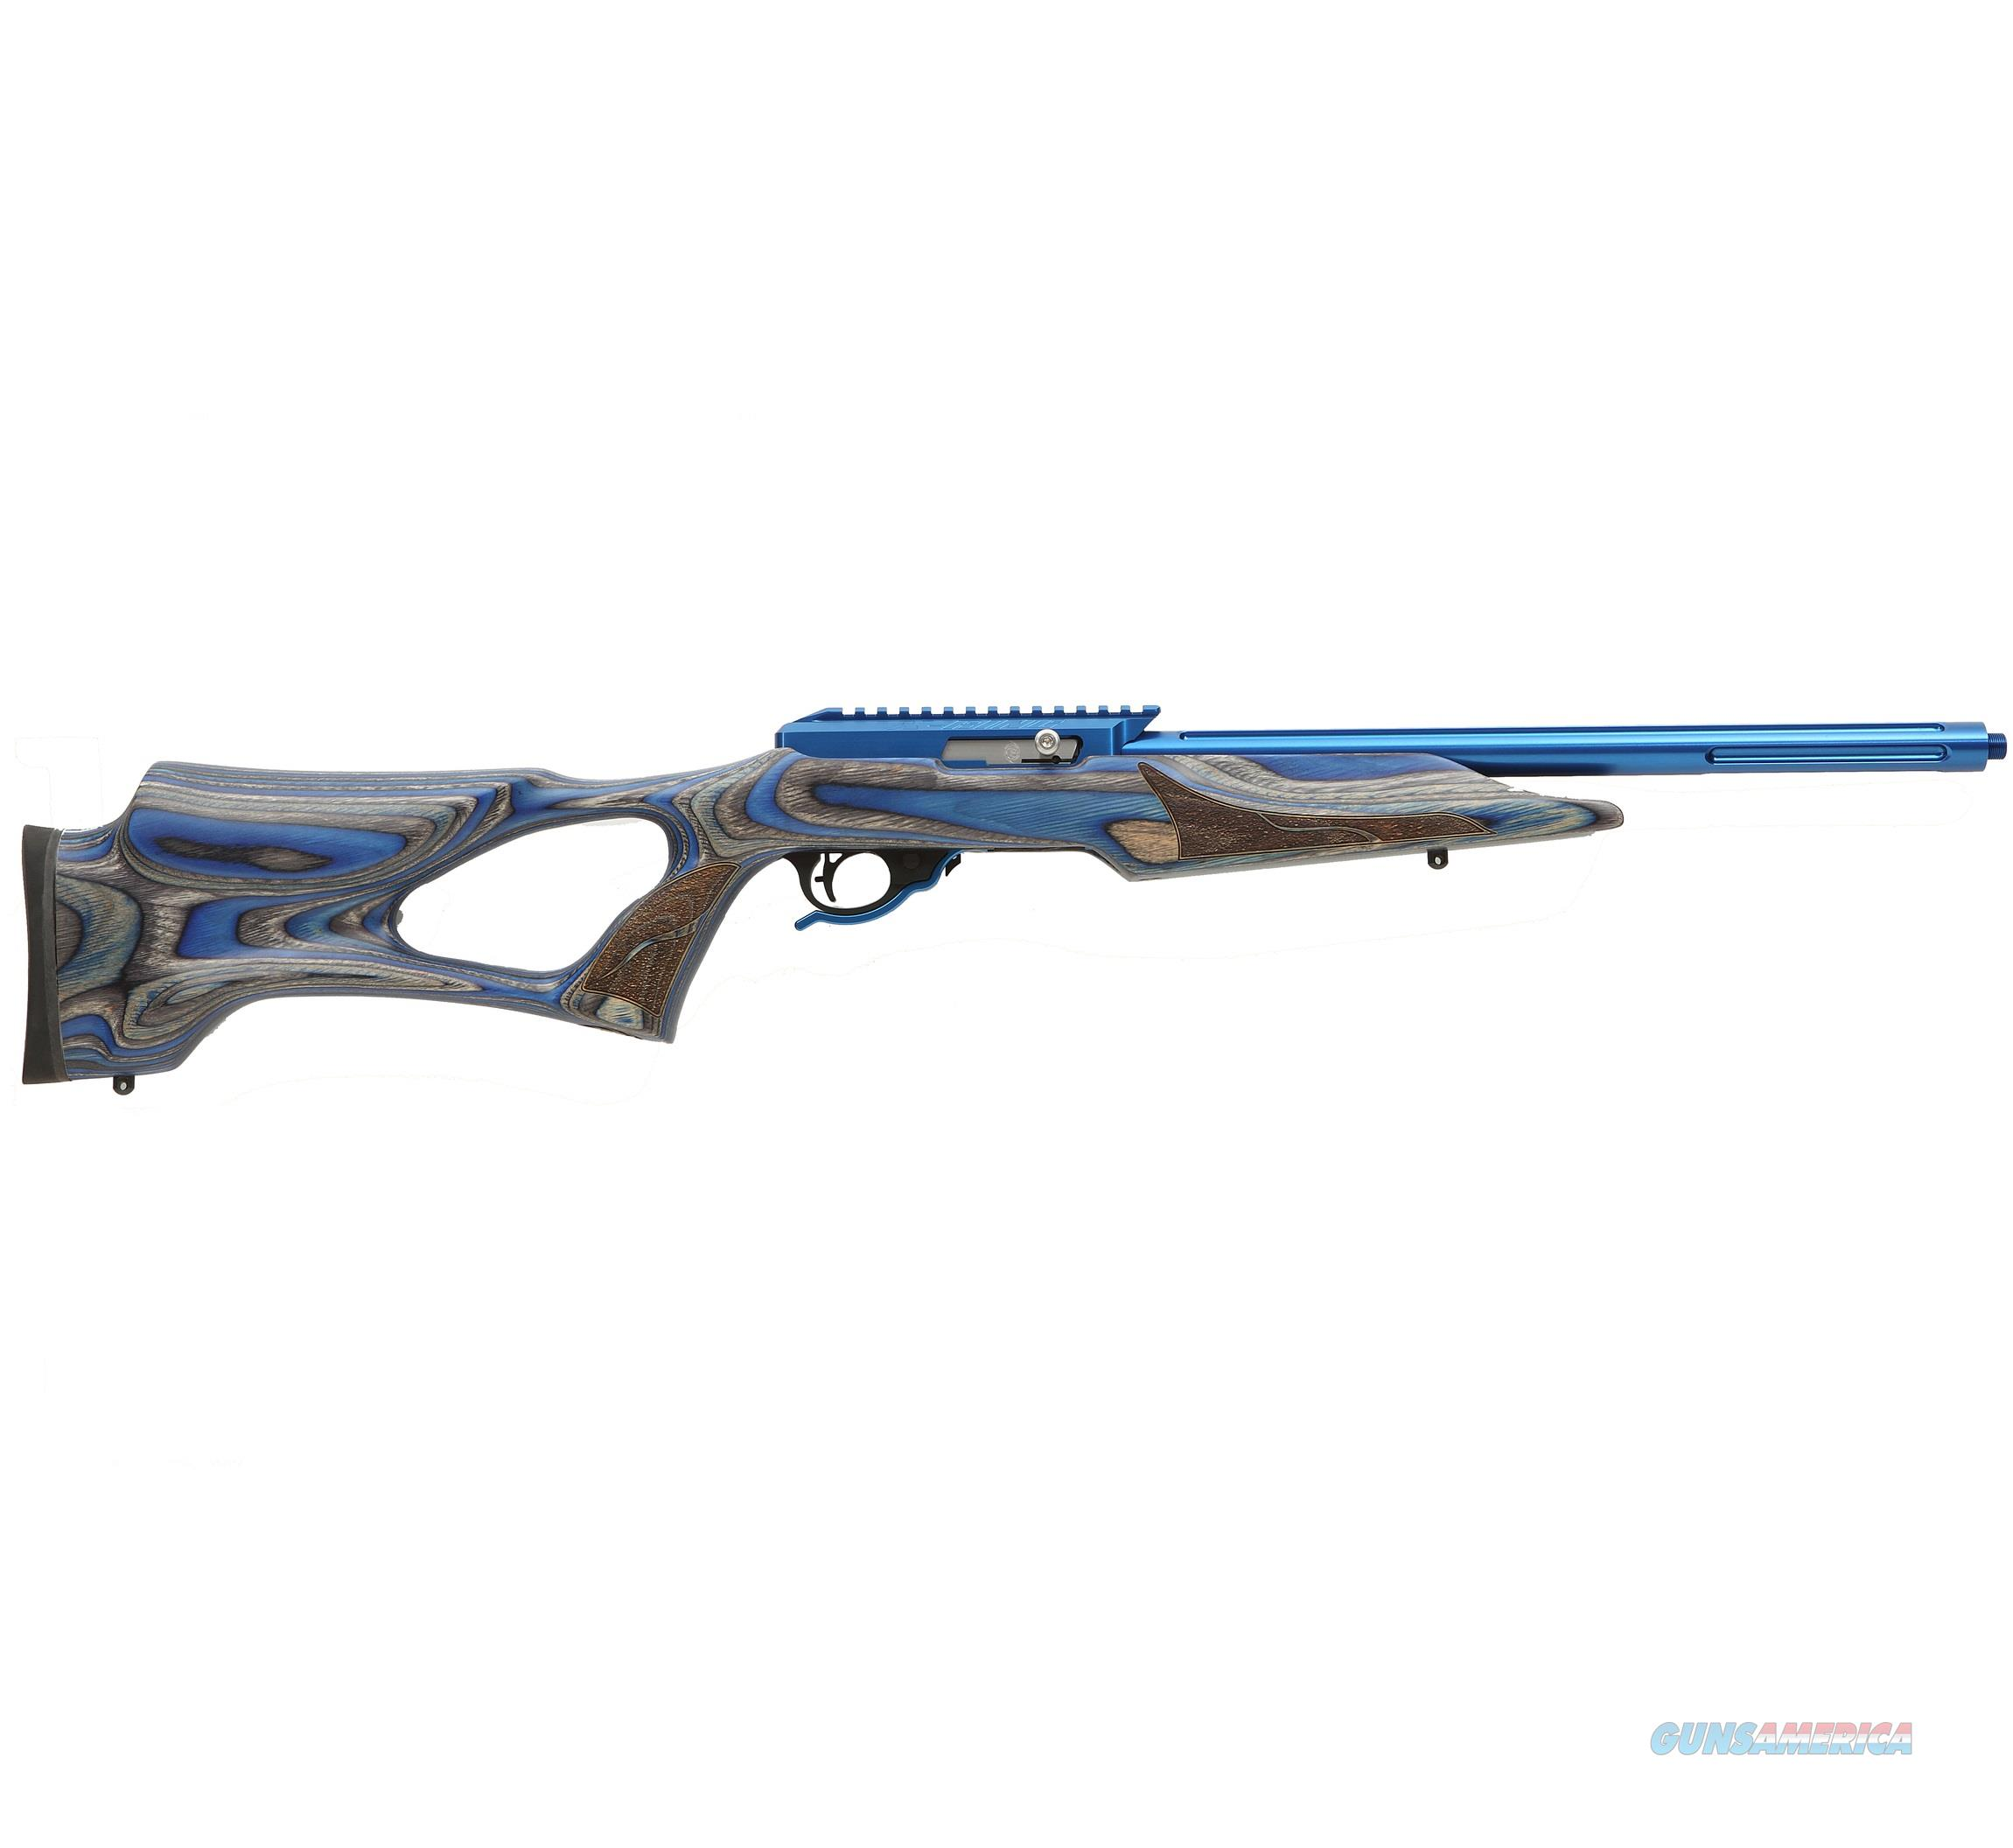 TACTICAL SOLUTIONS X-RING RIFLE VANTAGE ROYAL BLUE .22 LR 22LR 10/22 TSTTE-06V-ROY  Guns > Rifles > Ruger Rifles > 10-22